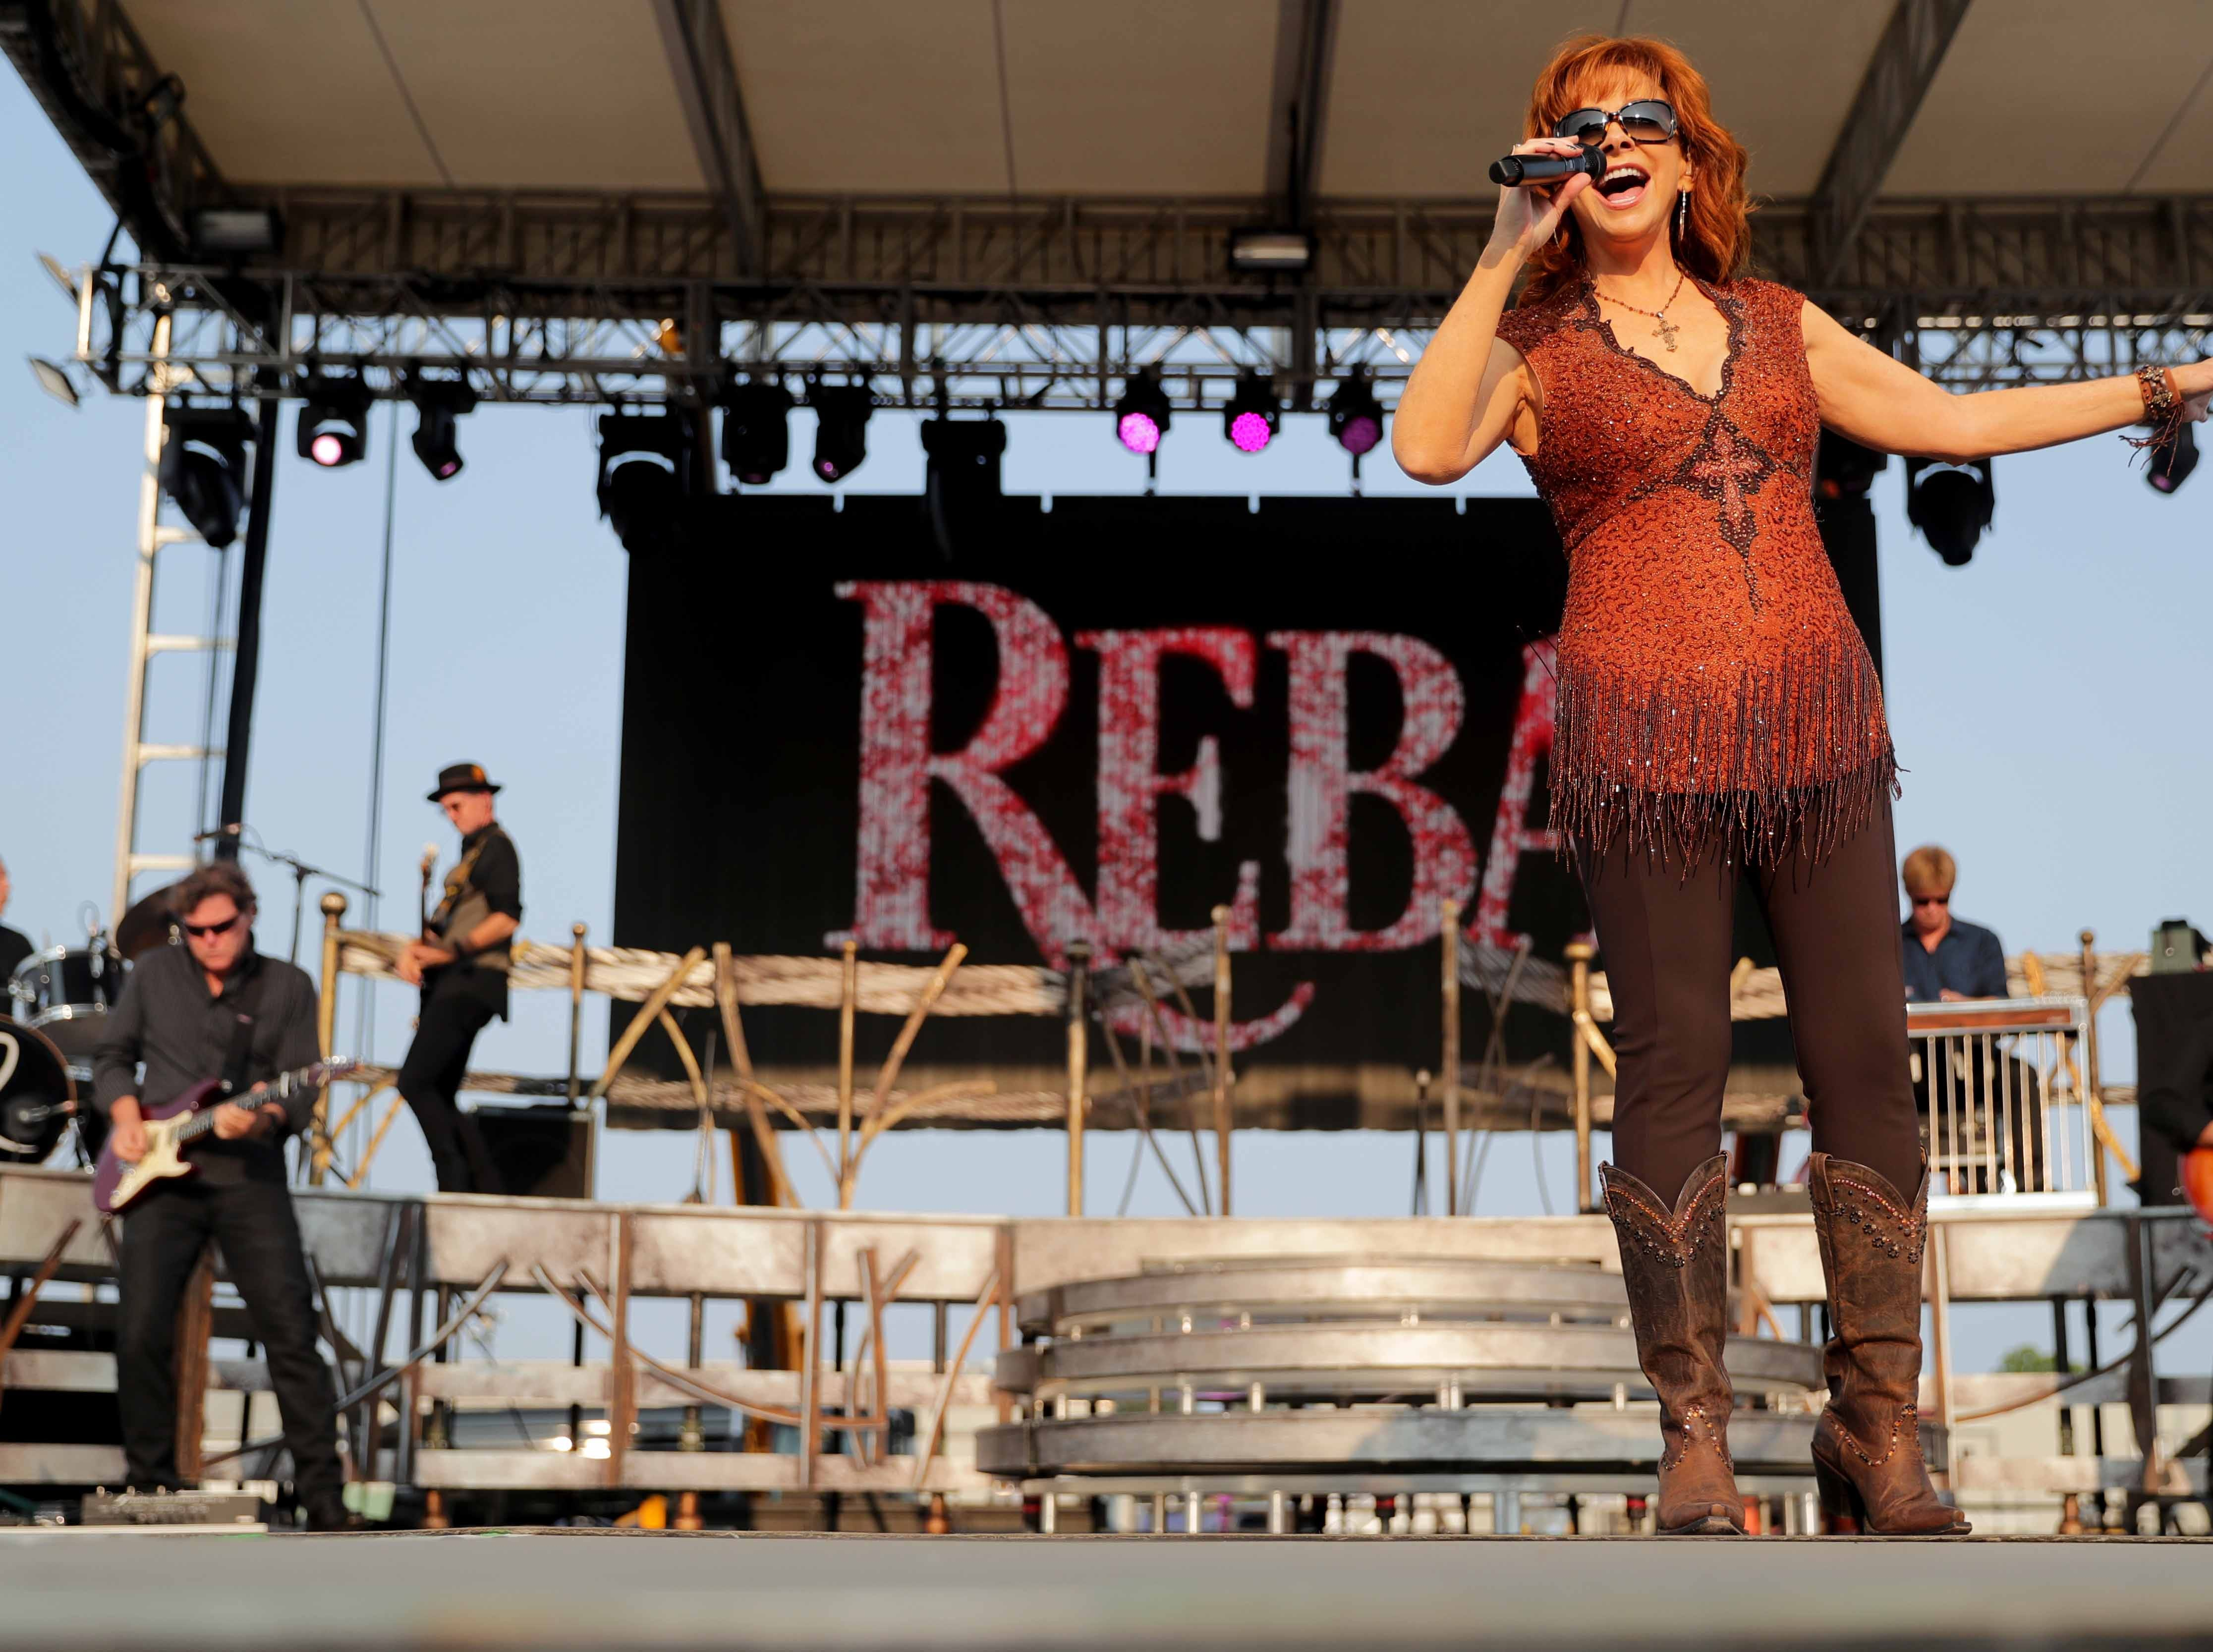 Reba McEntireperforms at the Wisconsin State Fair.